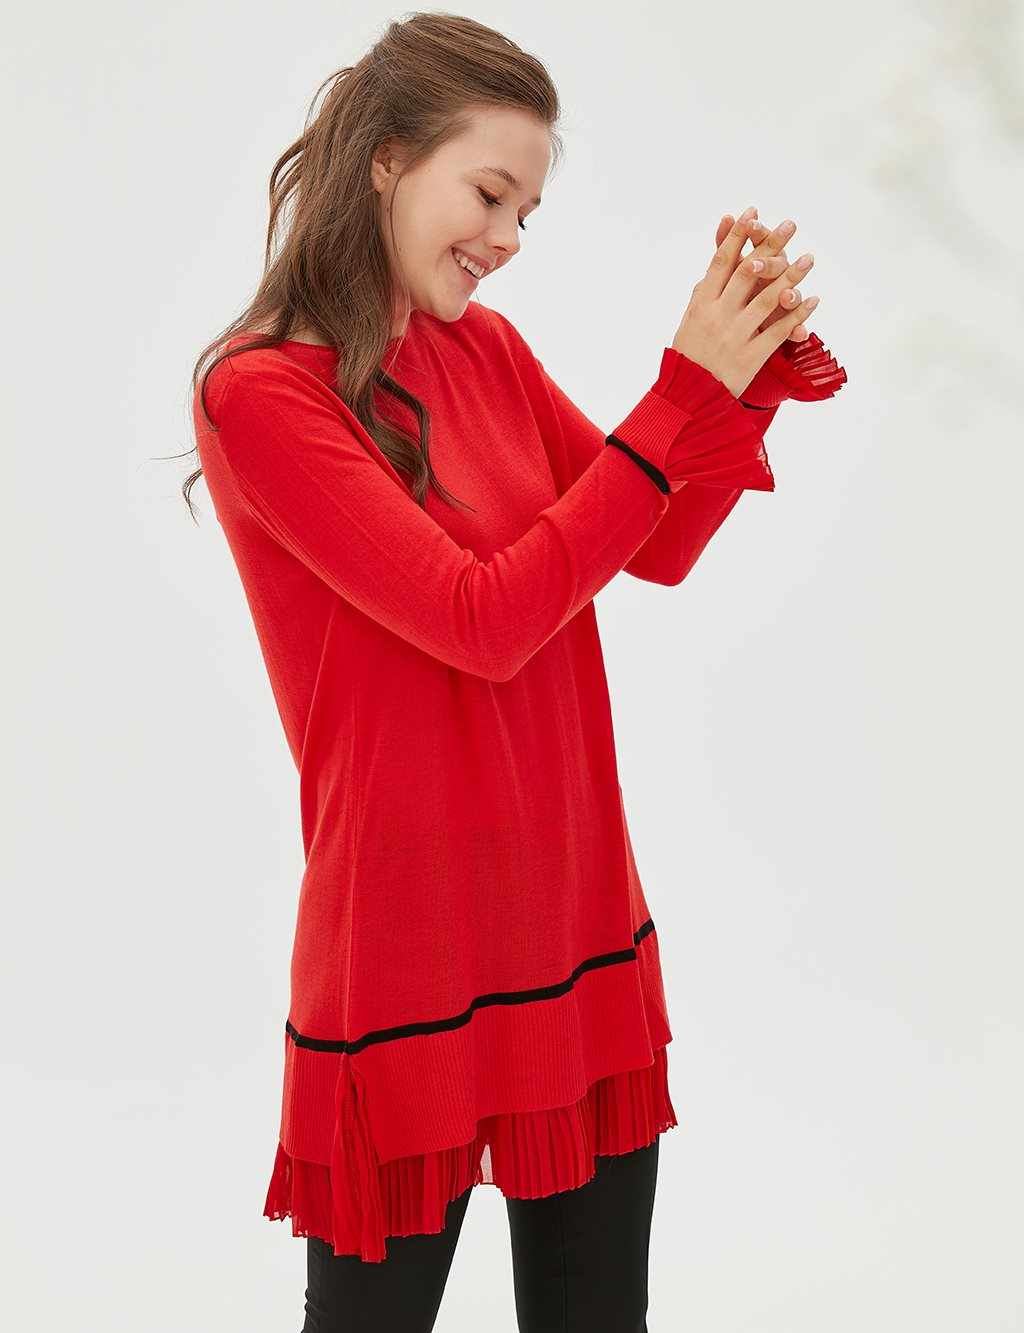 Ruffled Sleeve Knitwear Tunic B20 TRK20 Red